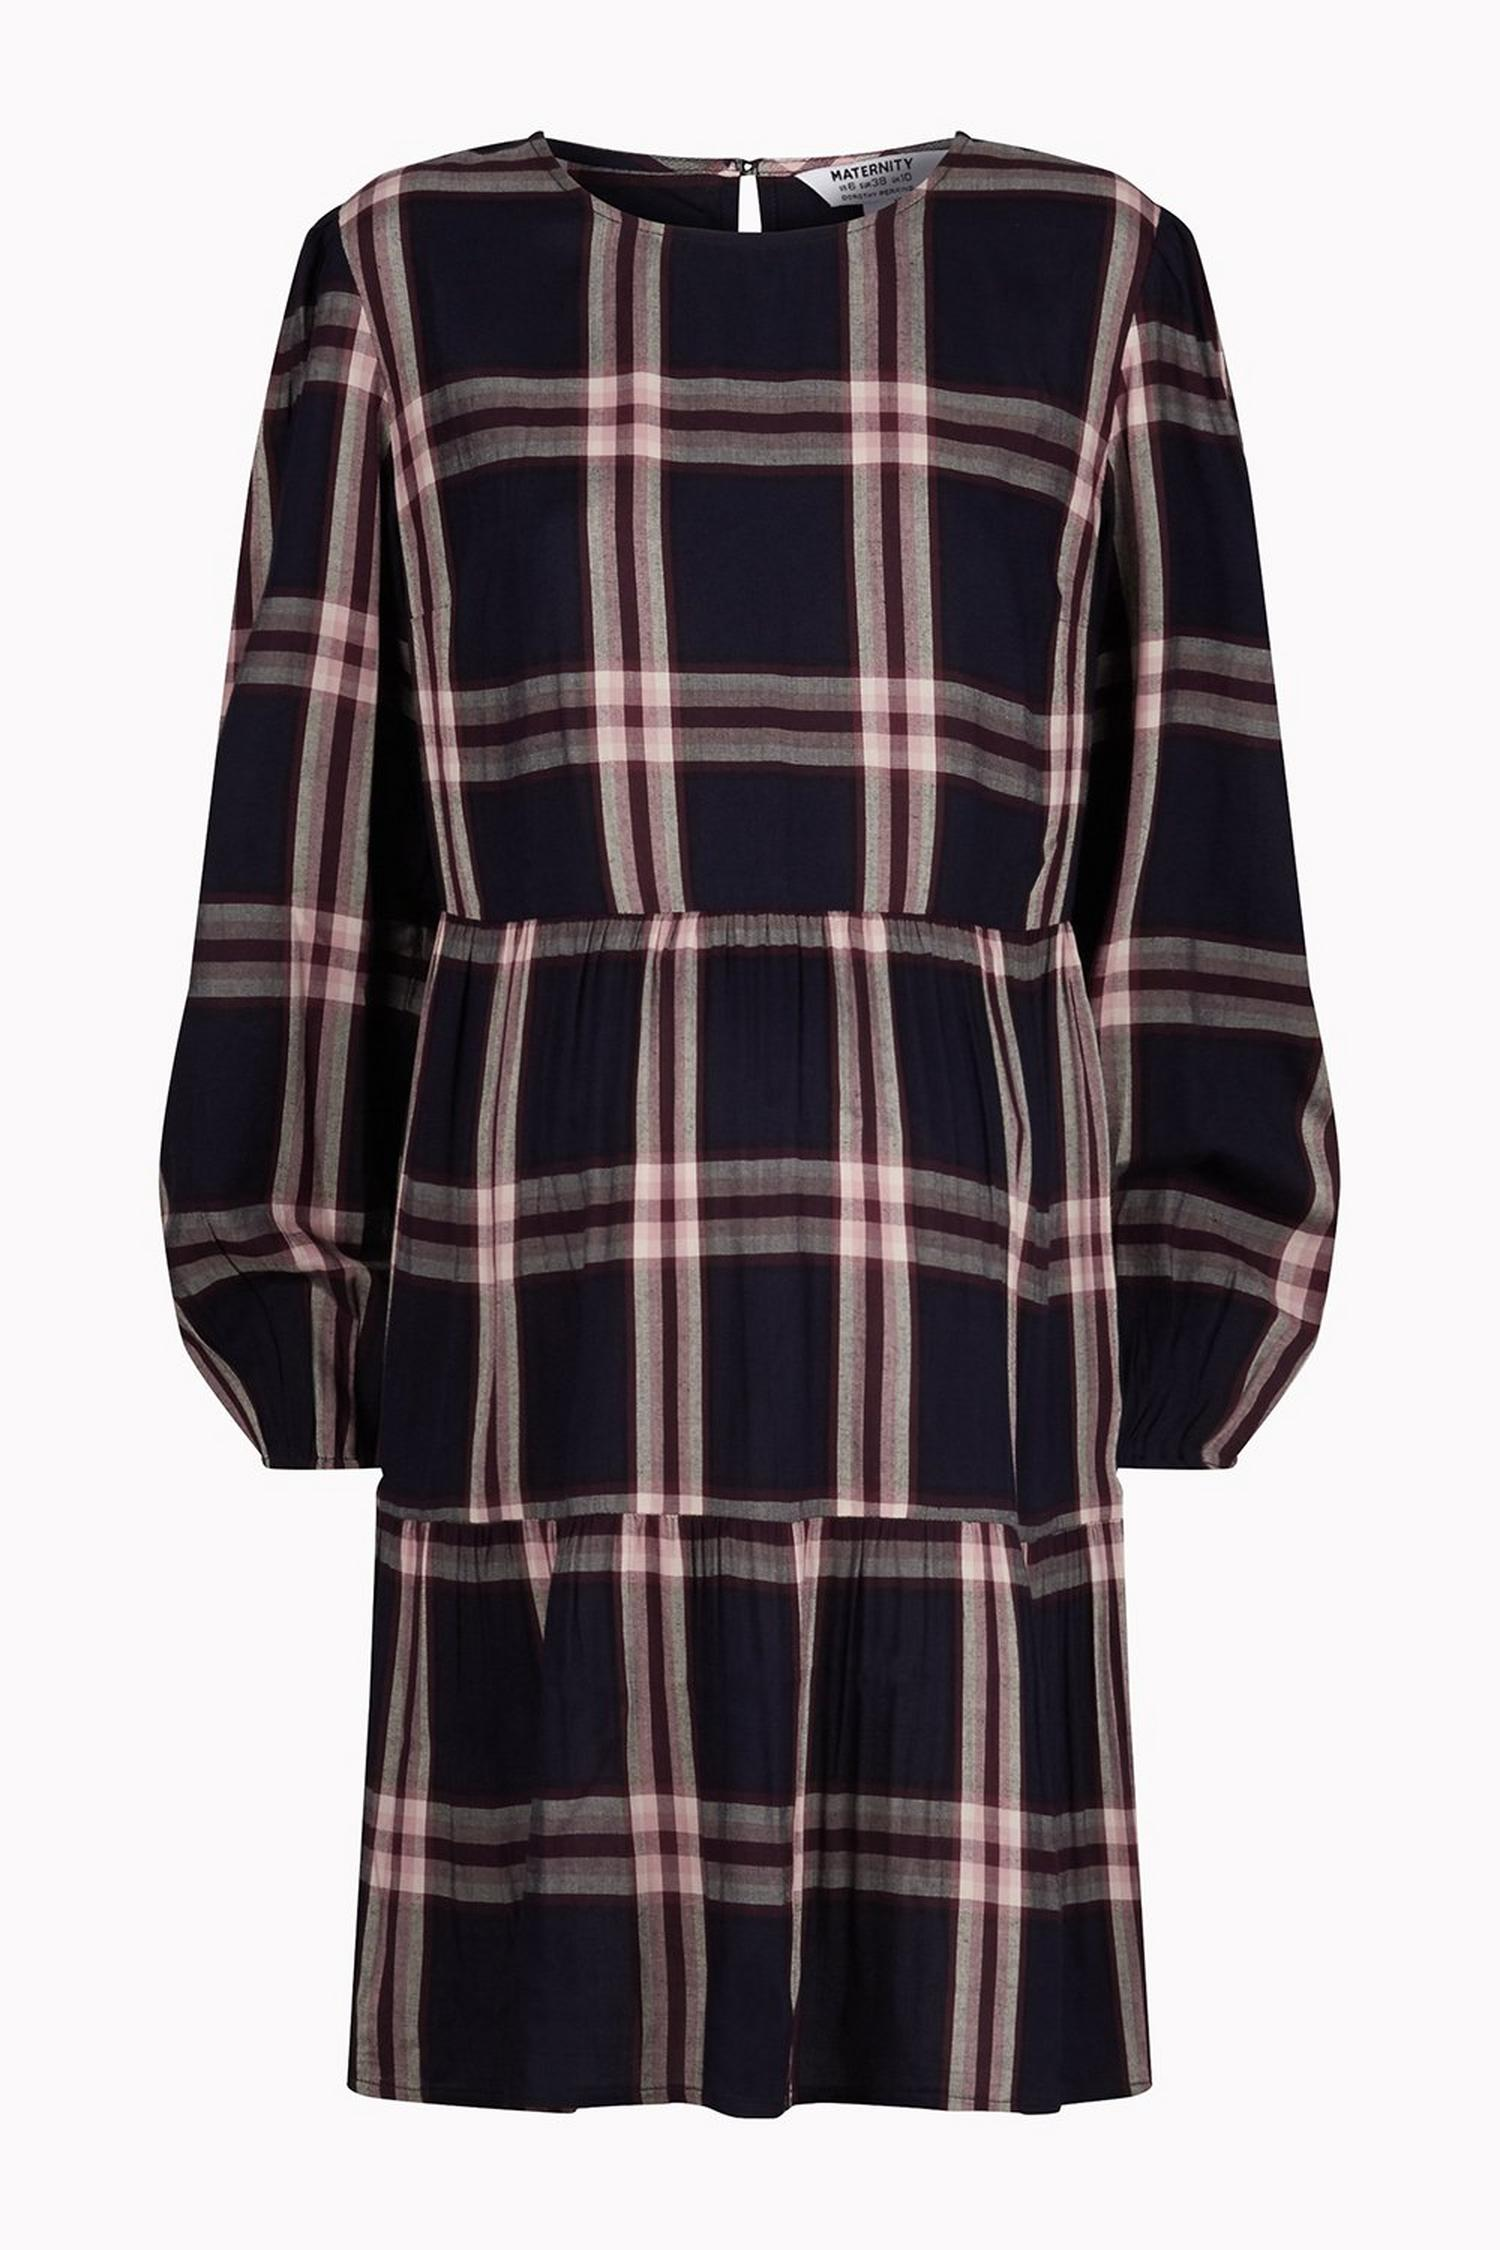 148 Maternity Navy Check Print Smock Dress image number 4